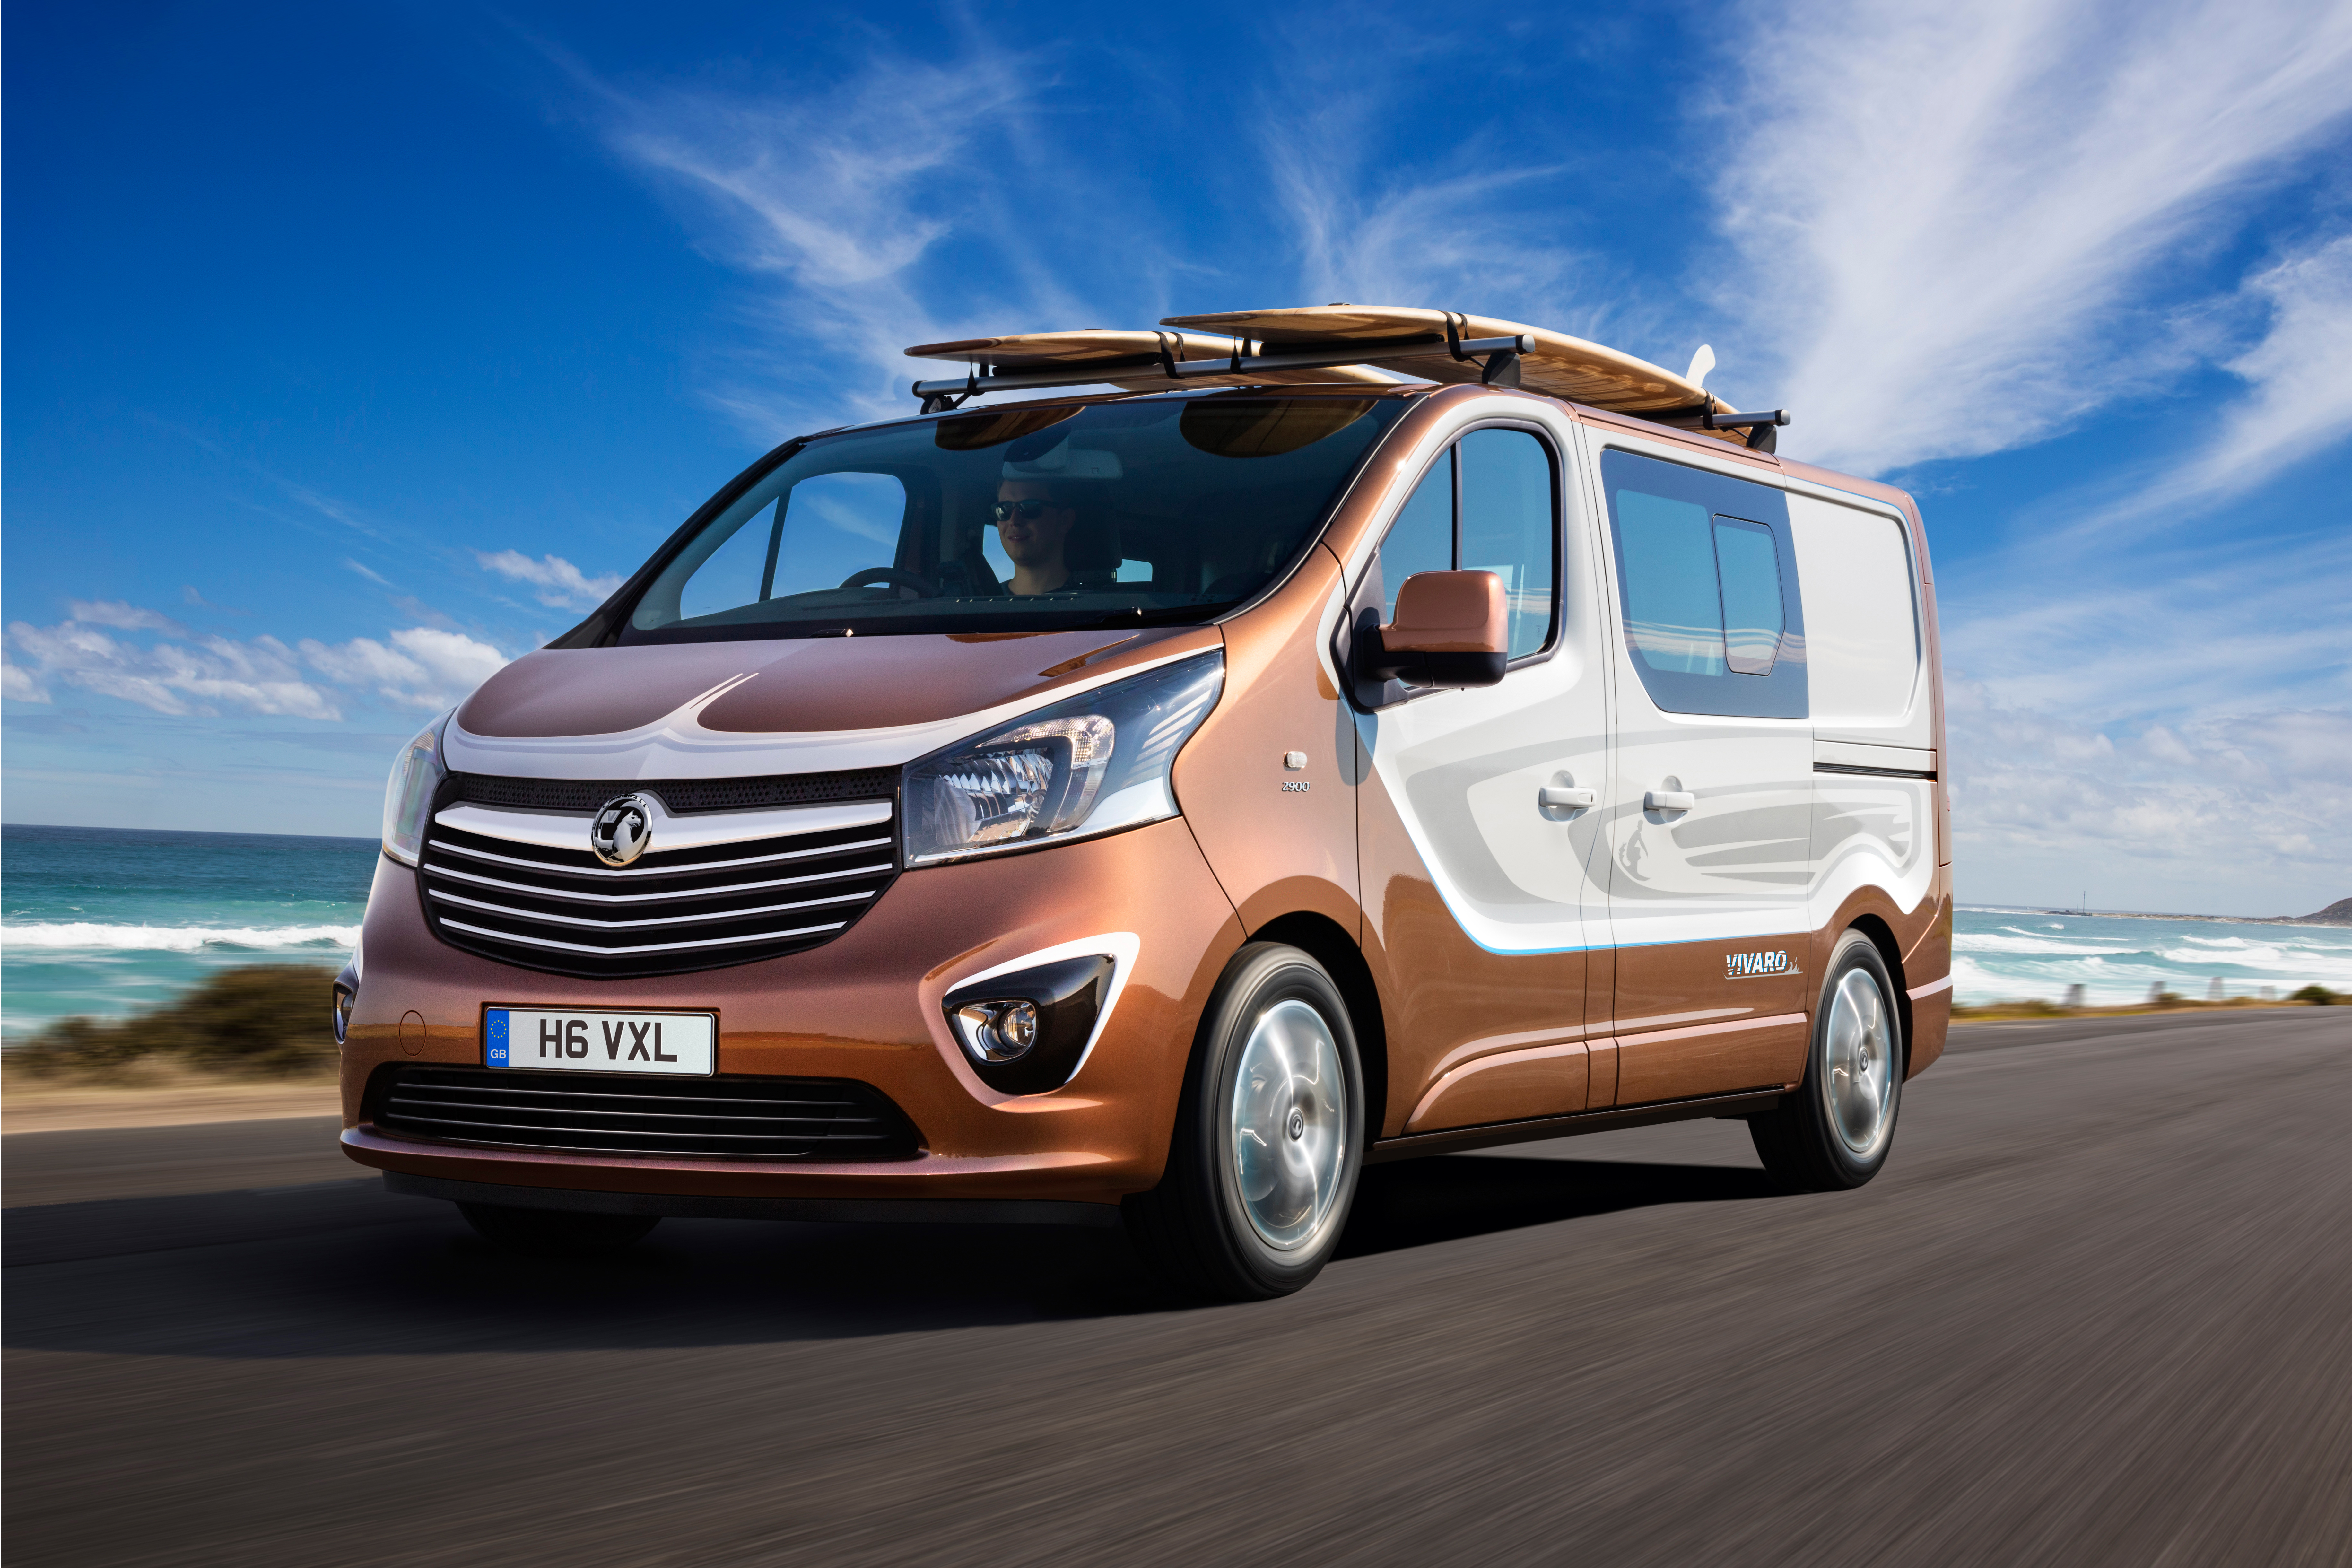 Skinka pris Geometri  Vauxhall Vivaro Surf Concept turns on the style | Auto Express